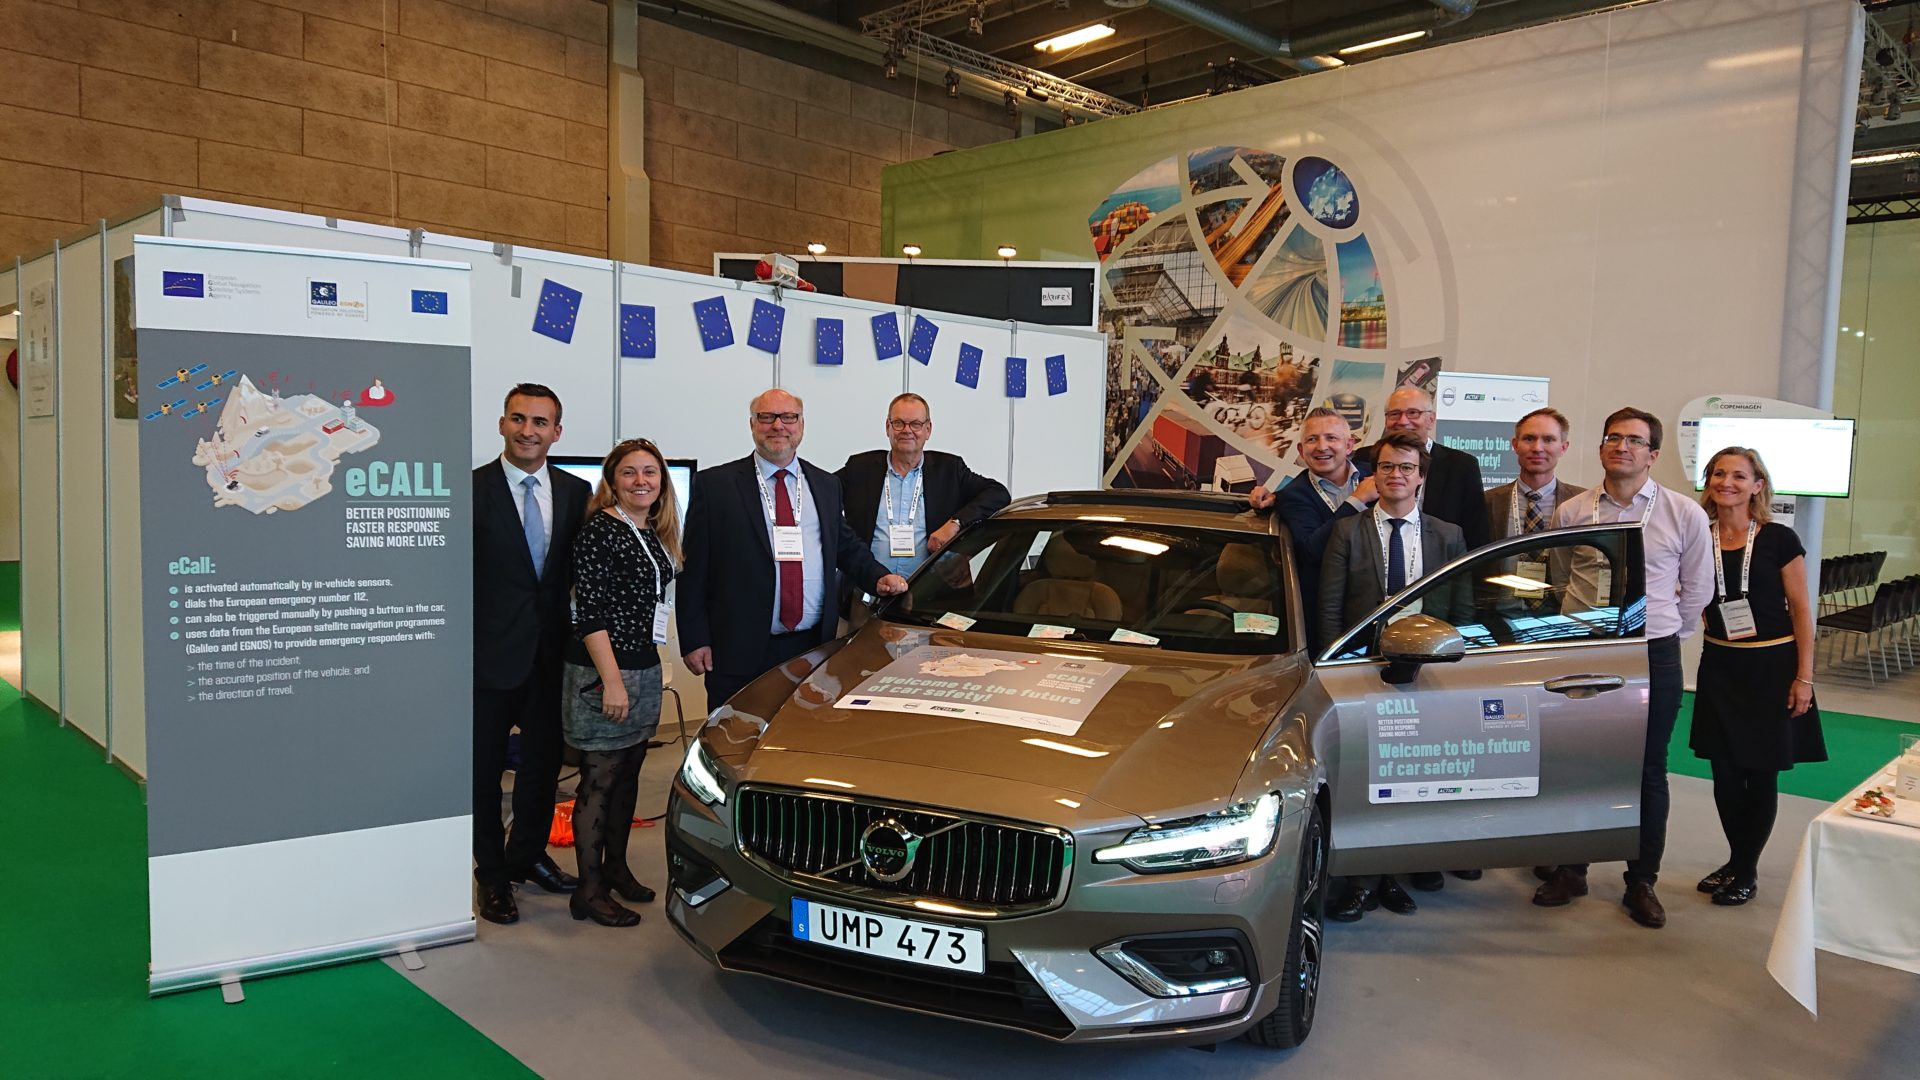 GNSS.asia presents first eCall-enabled car with Volvo & industry